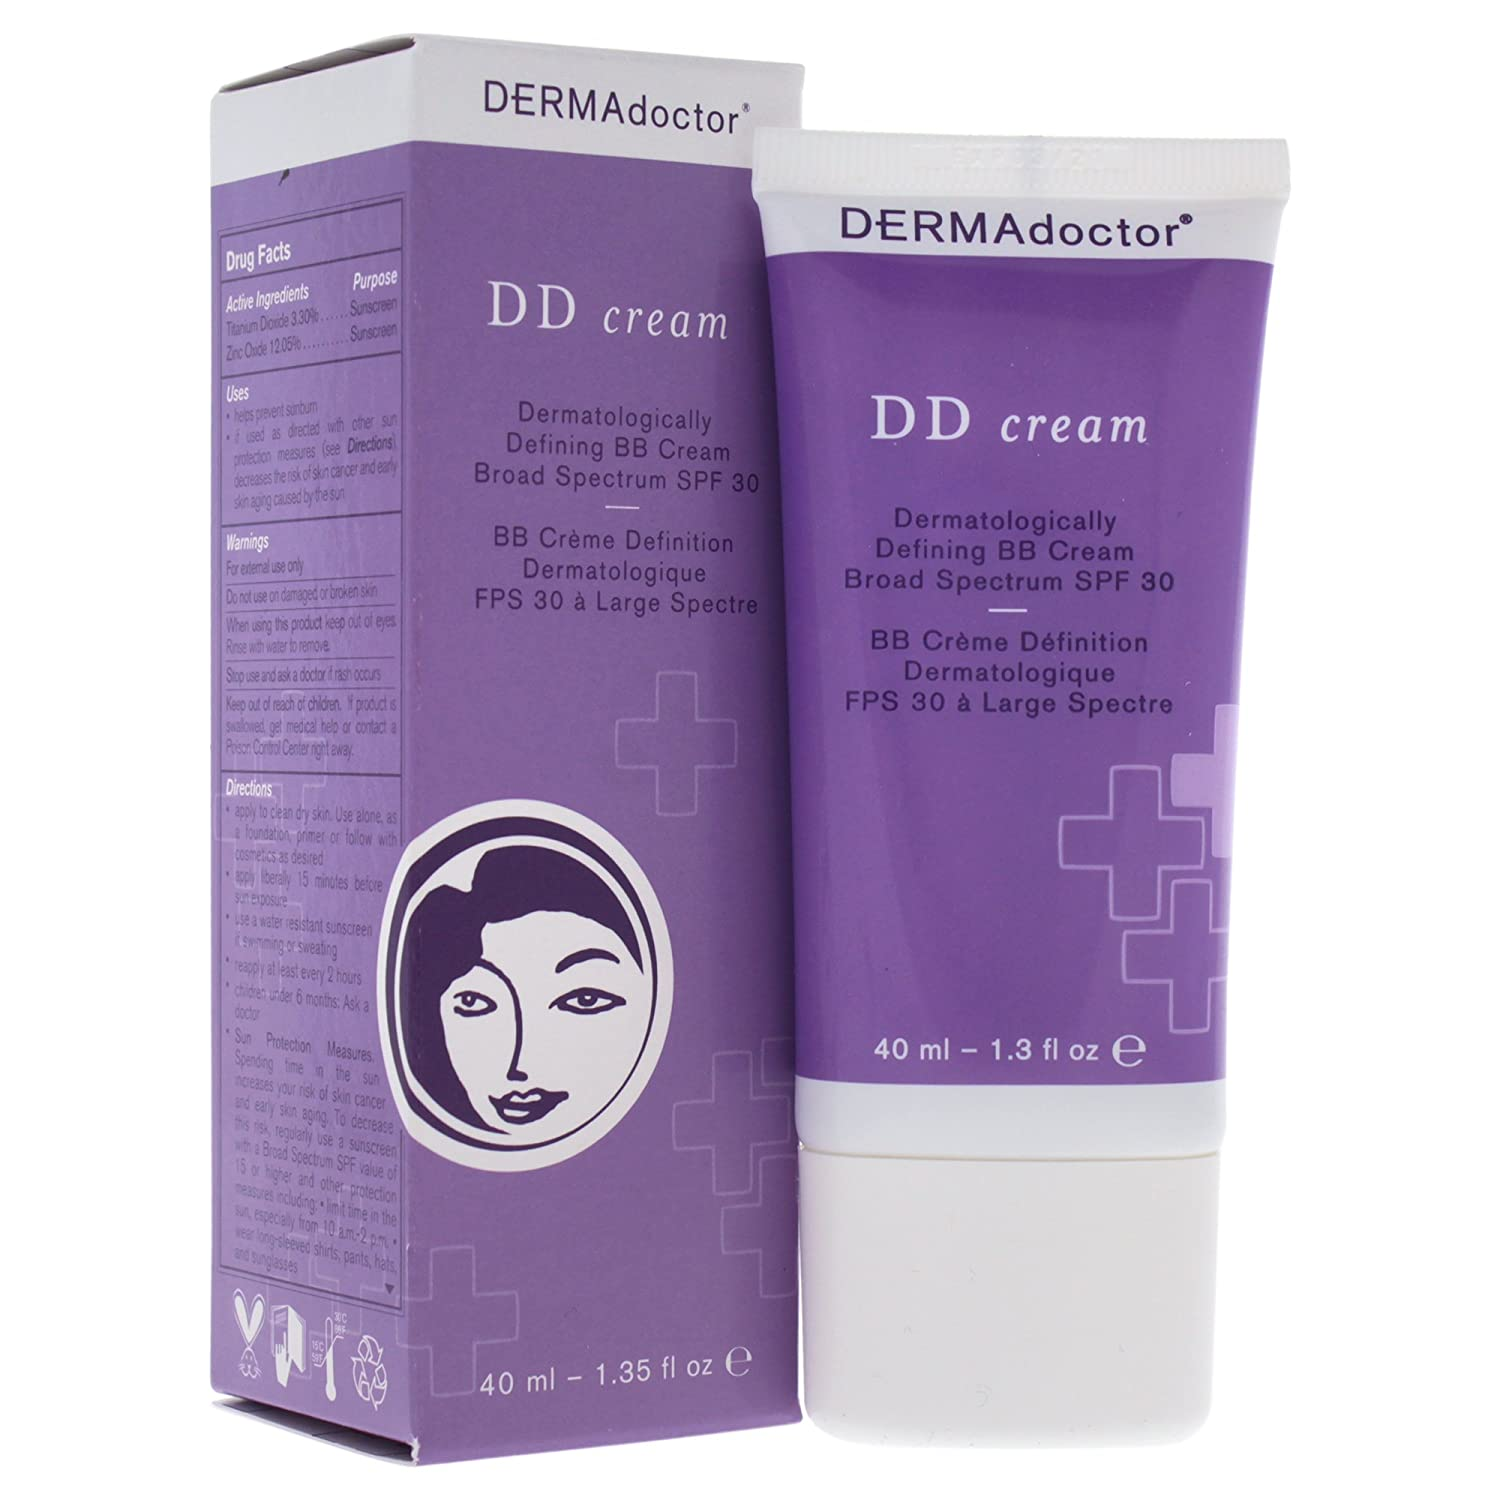 Dermadoctor DD Cream Dermatologically Defining BB Cream Broad Spectrum Spf 30, 1.3 Oz Fab Products